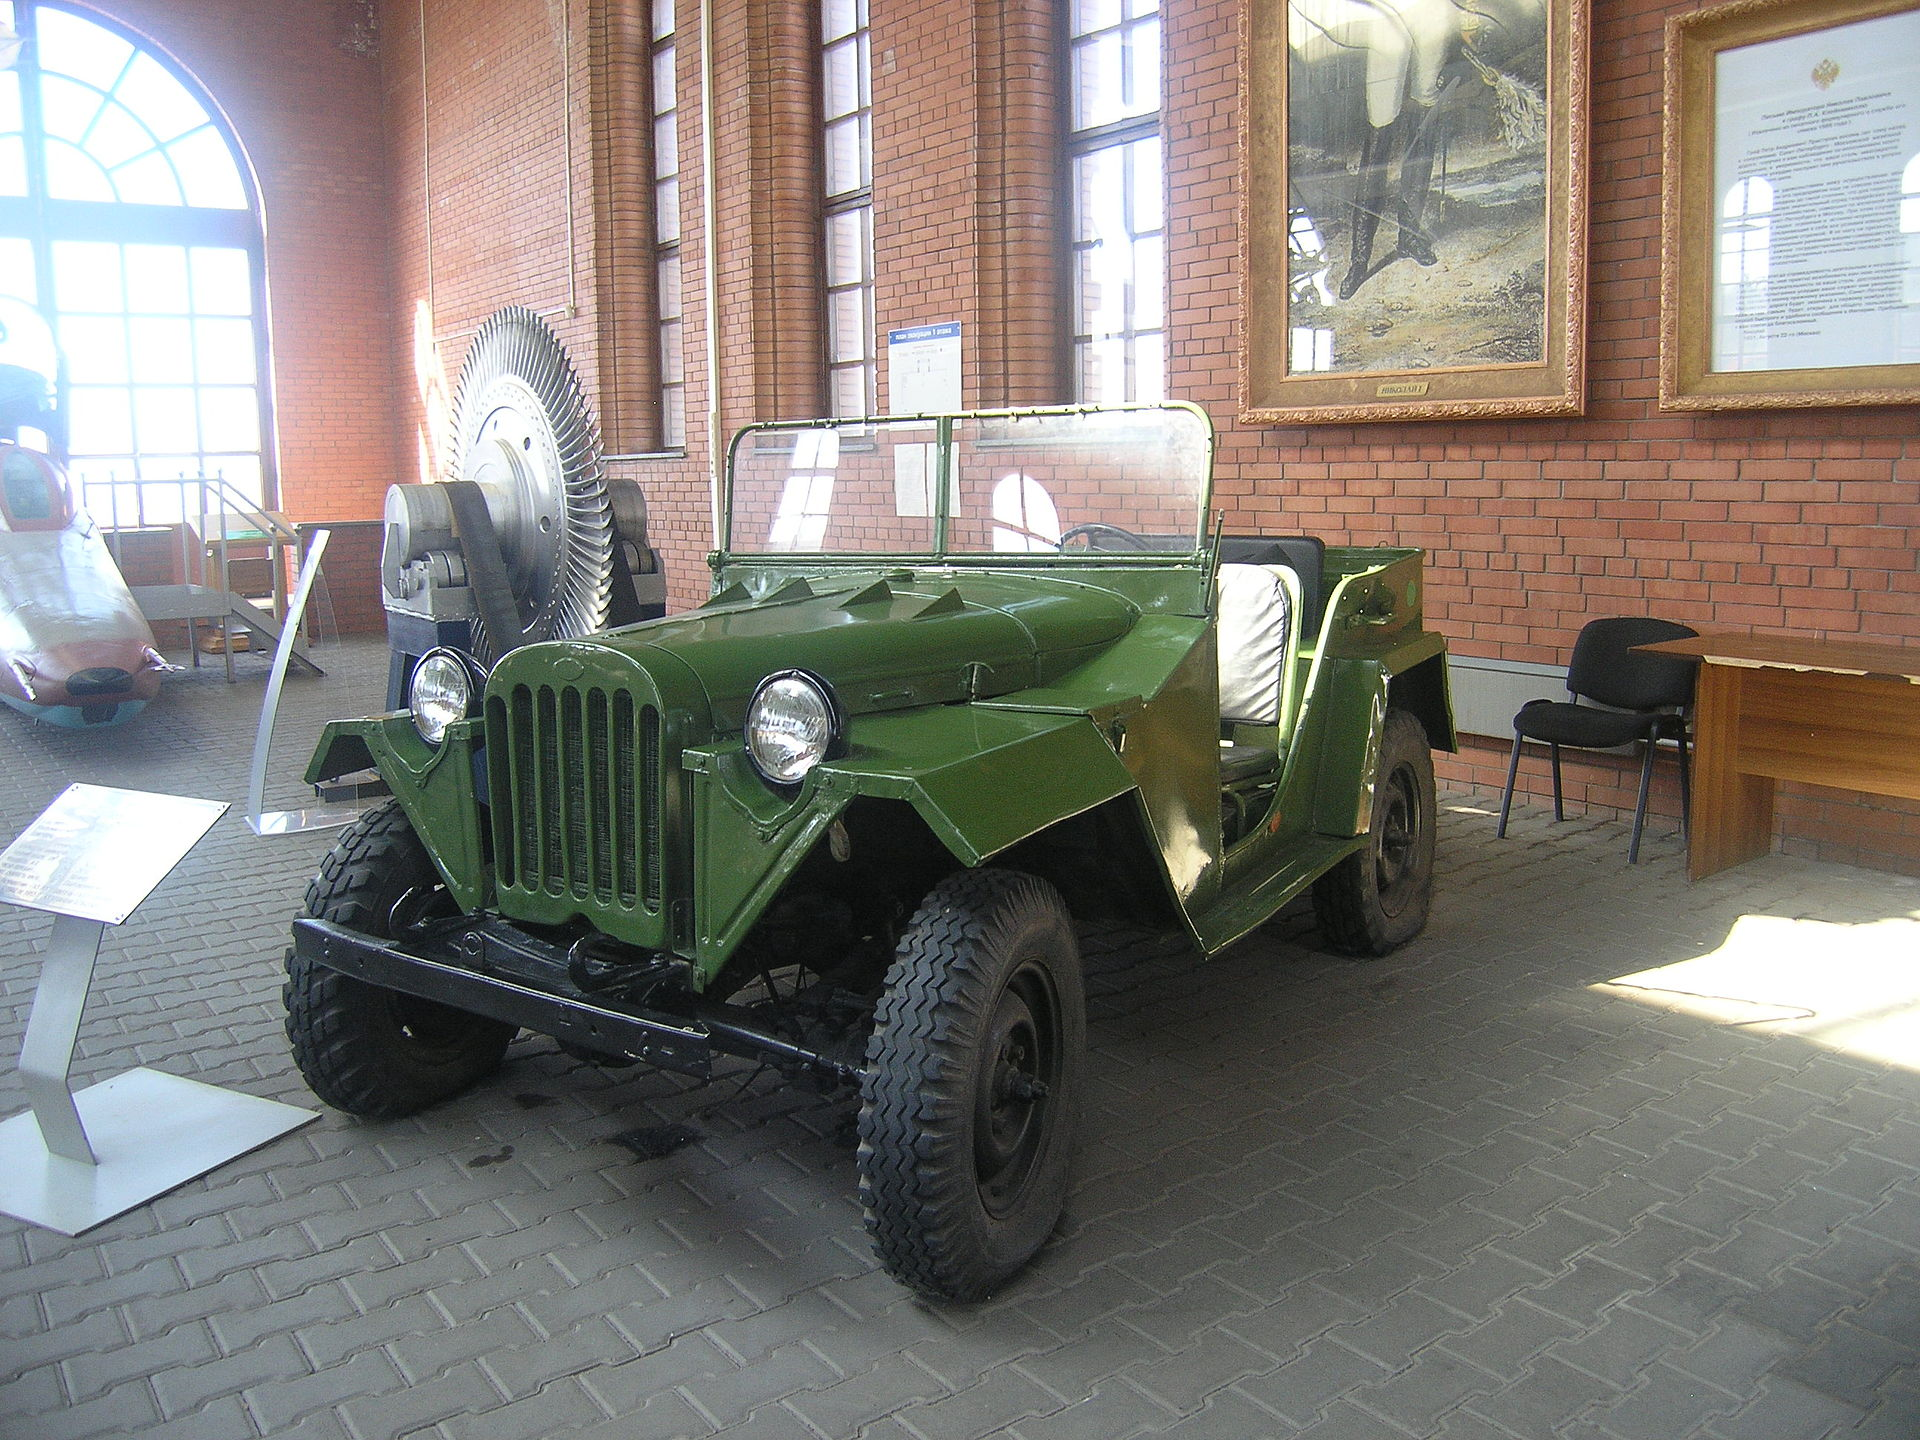 Military Vehicles For Sale >> GAZ-67 - Wikipedia